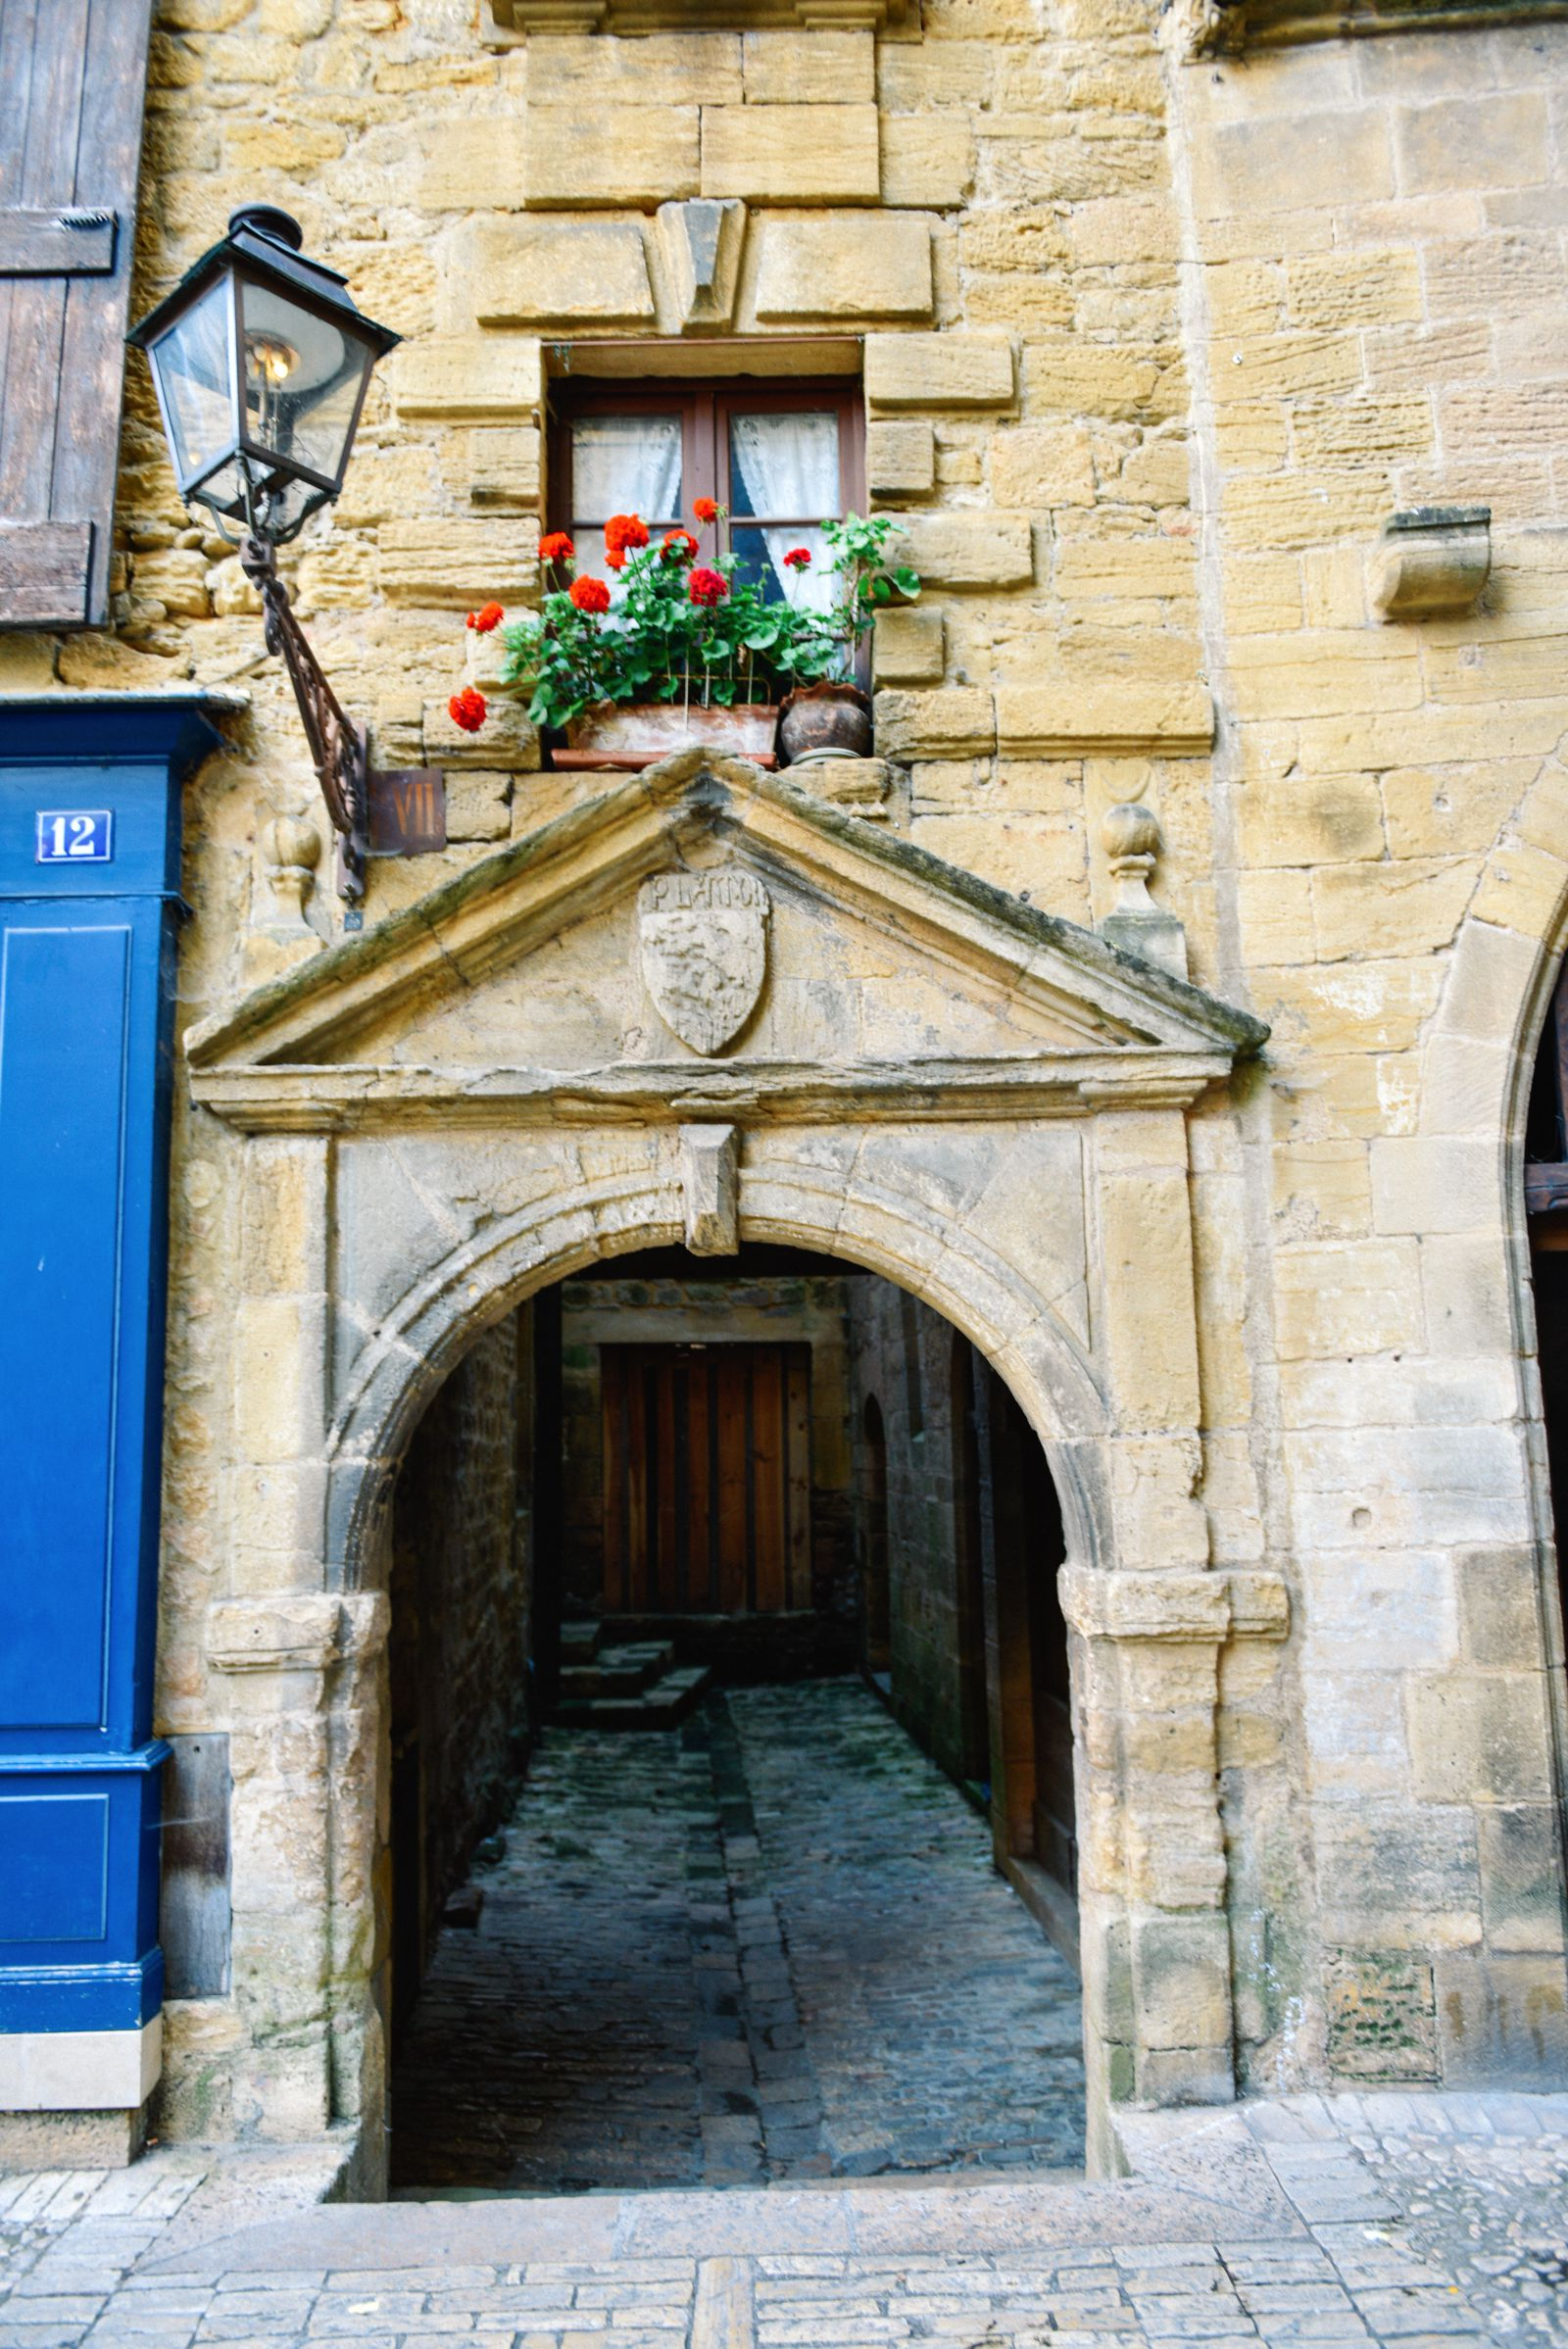 The Old Historic French Town Of Sarlat (25)